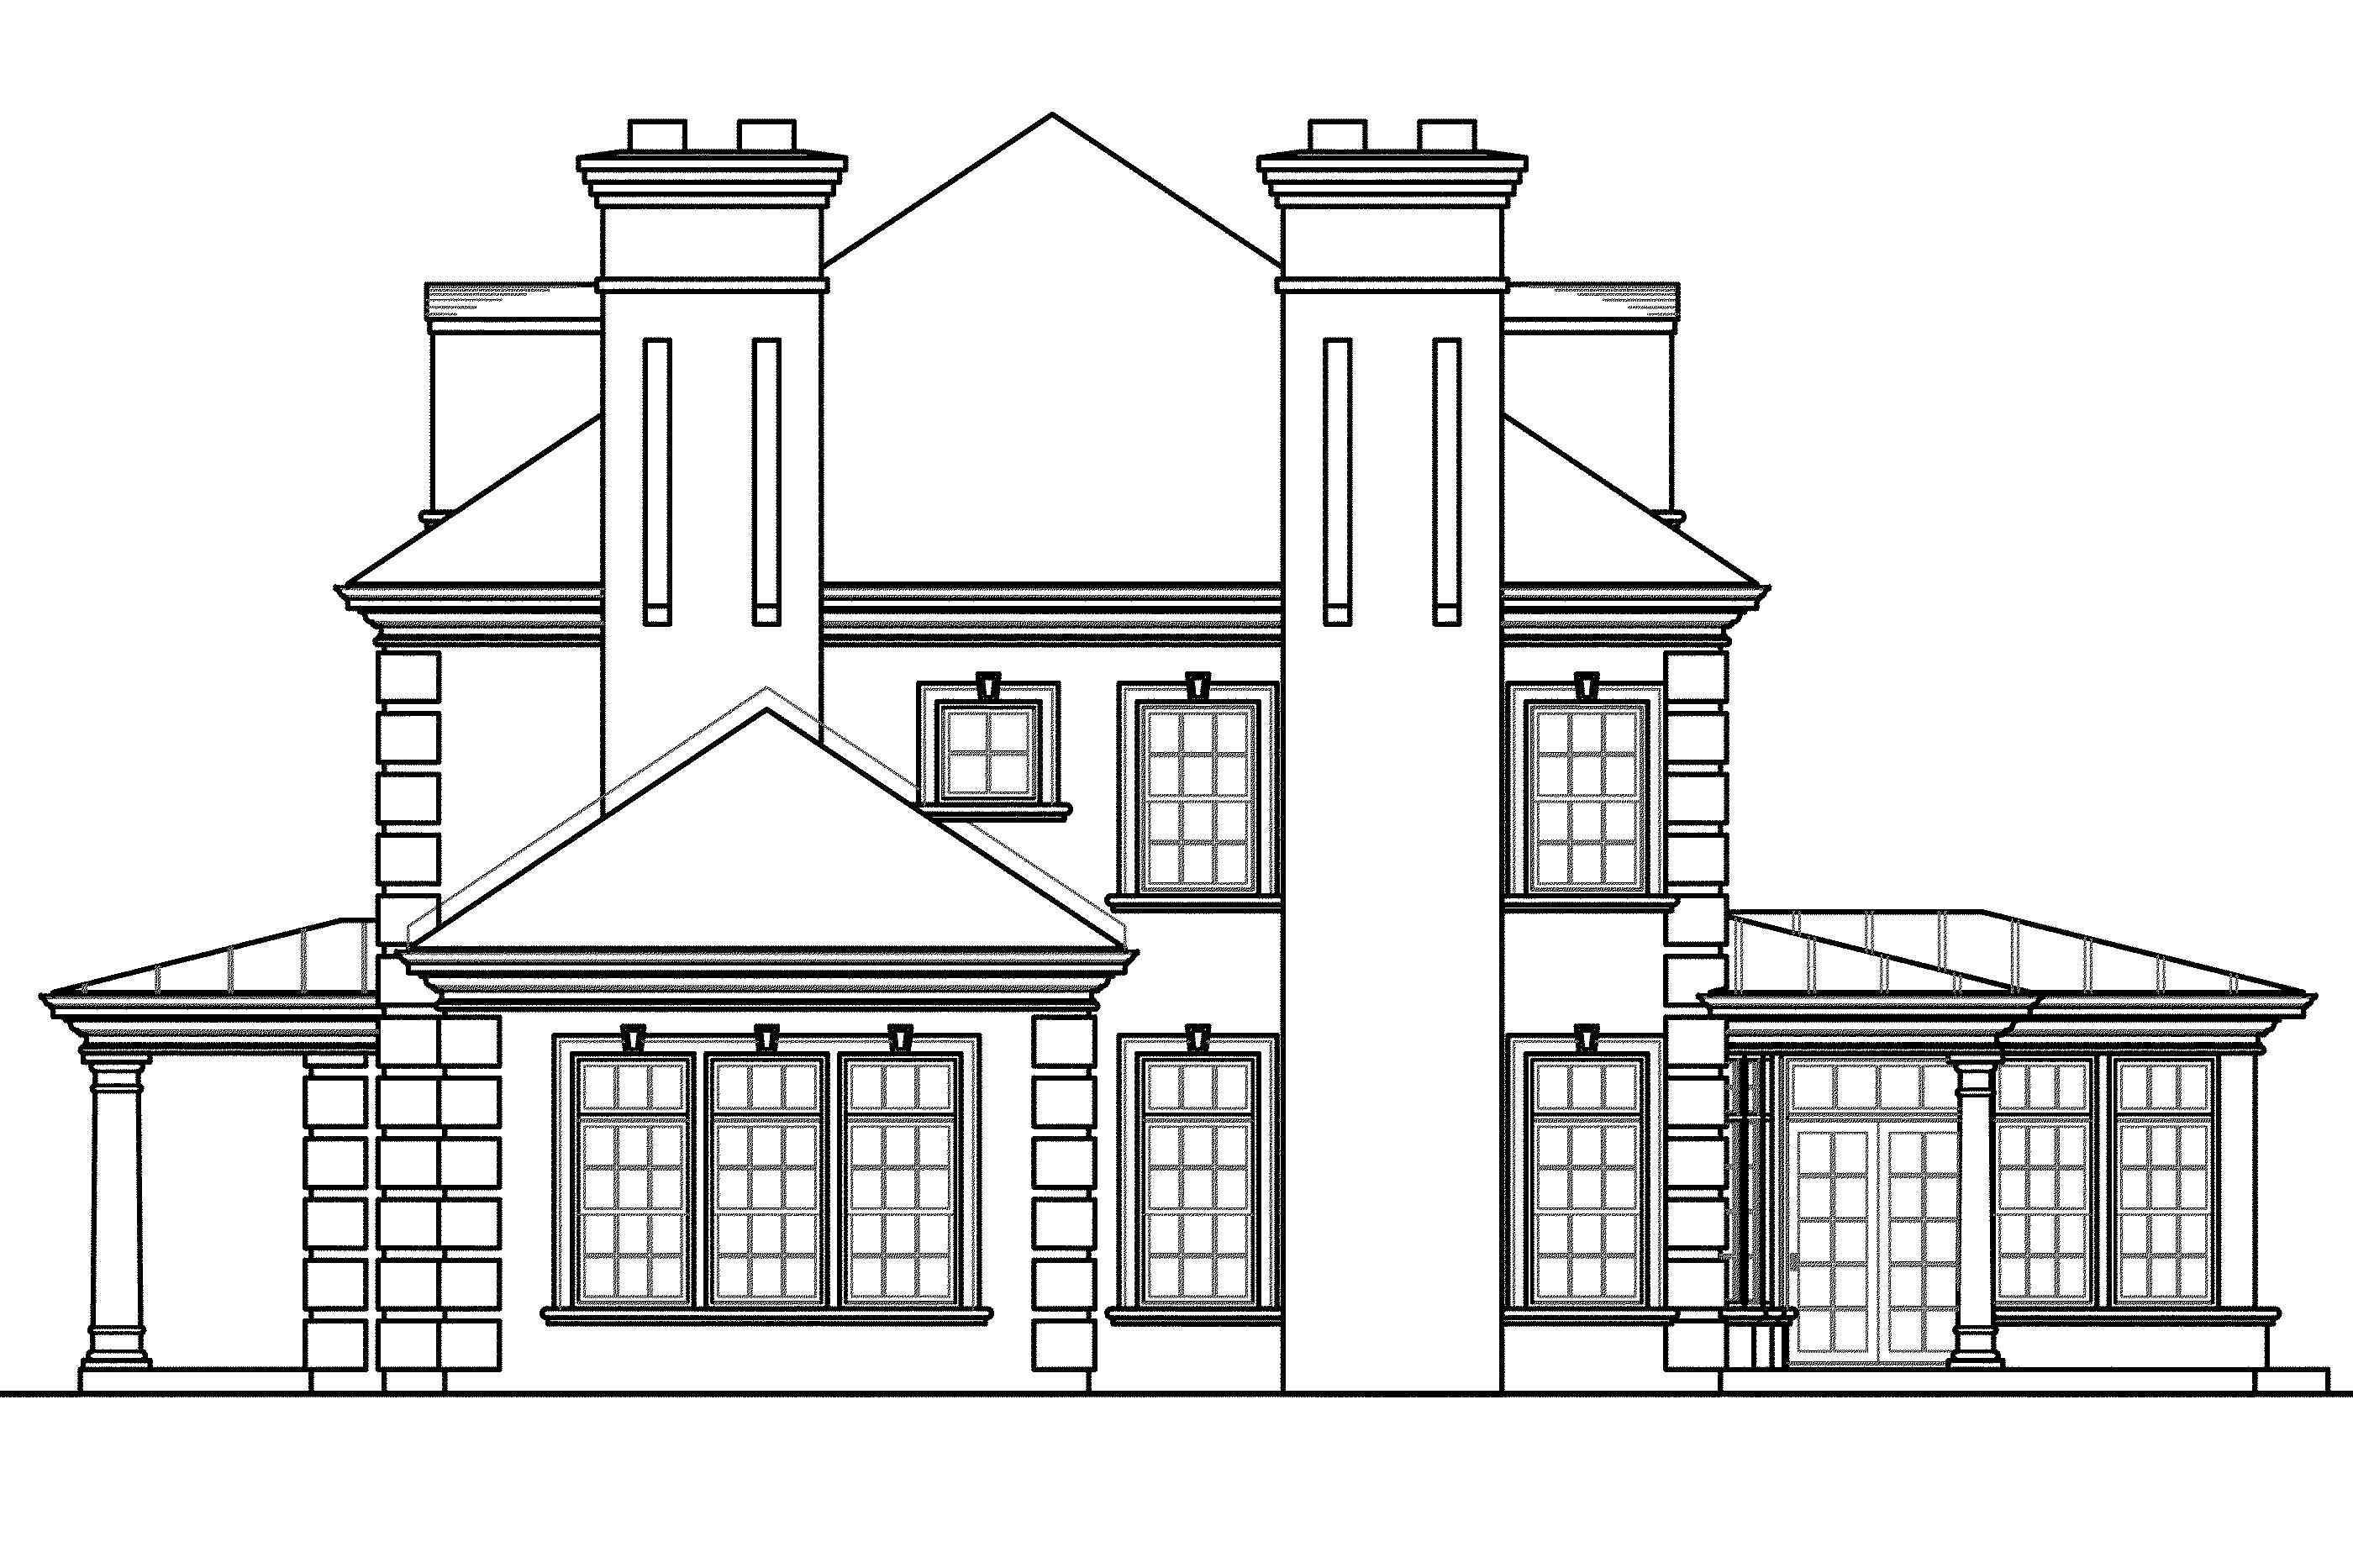 House Elevation Plan Images : Edgewood estate home plans associated designs